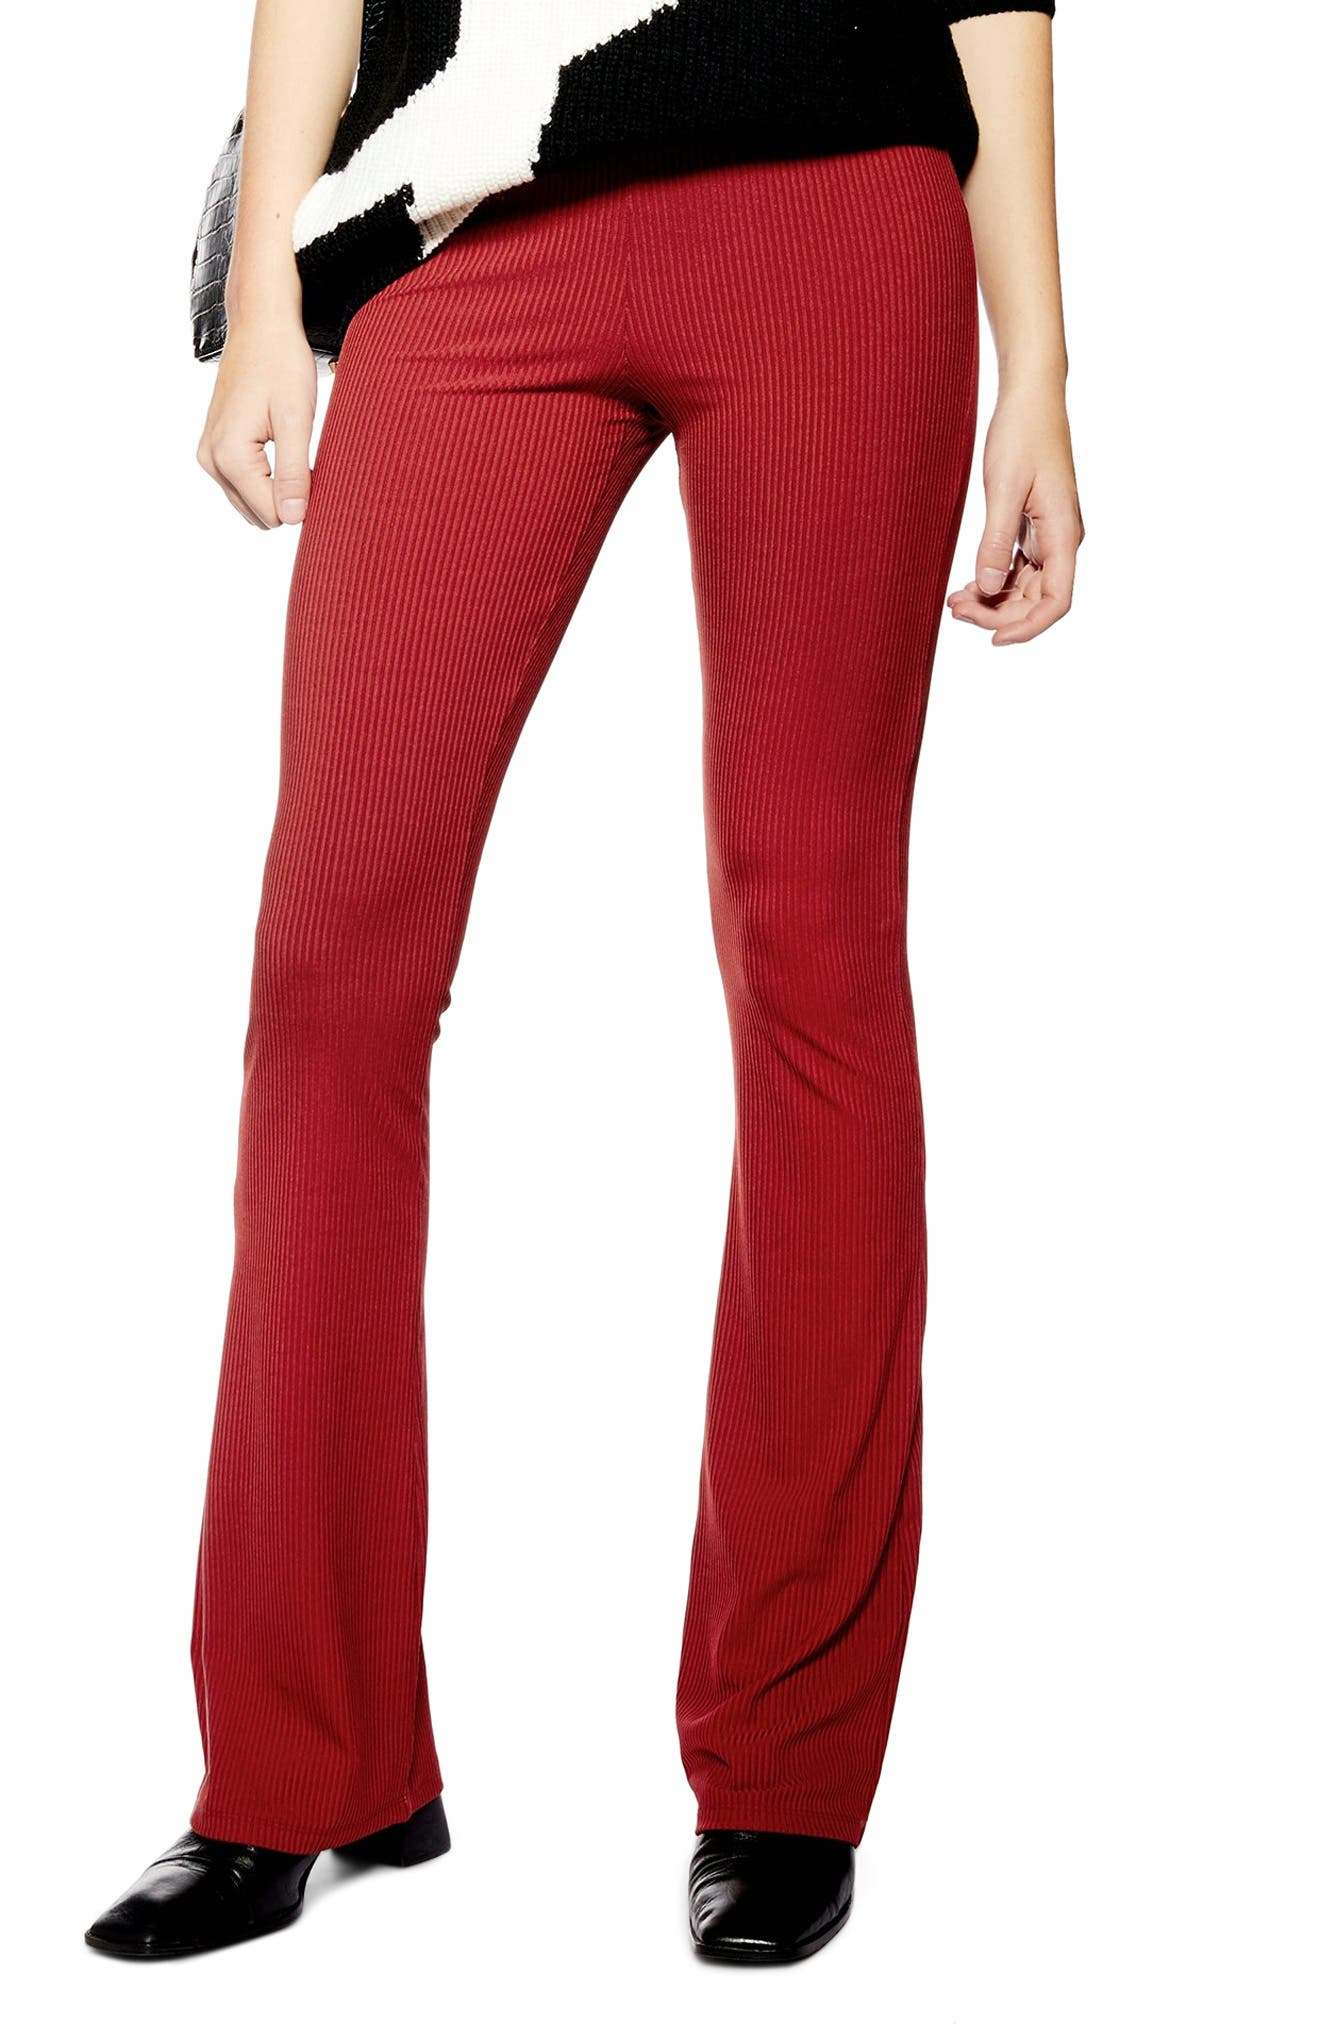 Topshop Skinny Ribbed Flare Pants, US (fits like 0) - Metallic